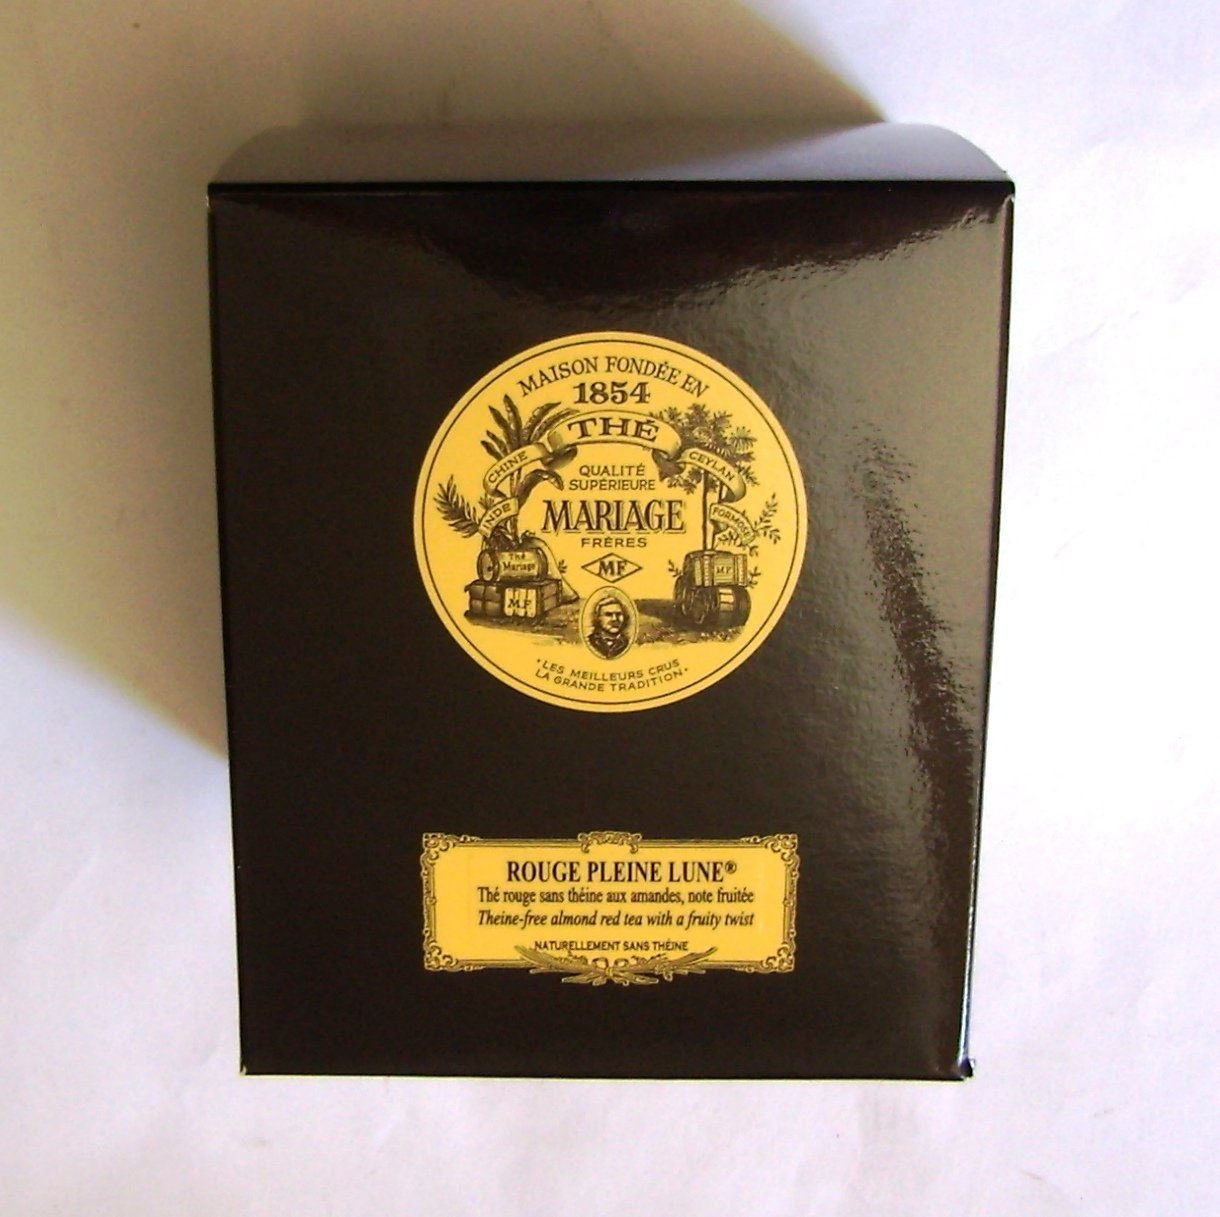 Mariage Frères - ROUGE PLEINE LUNE - Black classical sealed 3.52oz / 100gr canister / tin